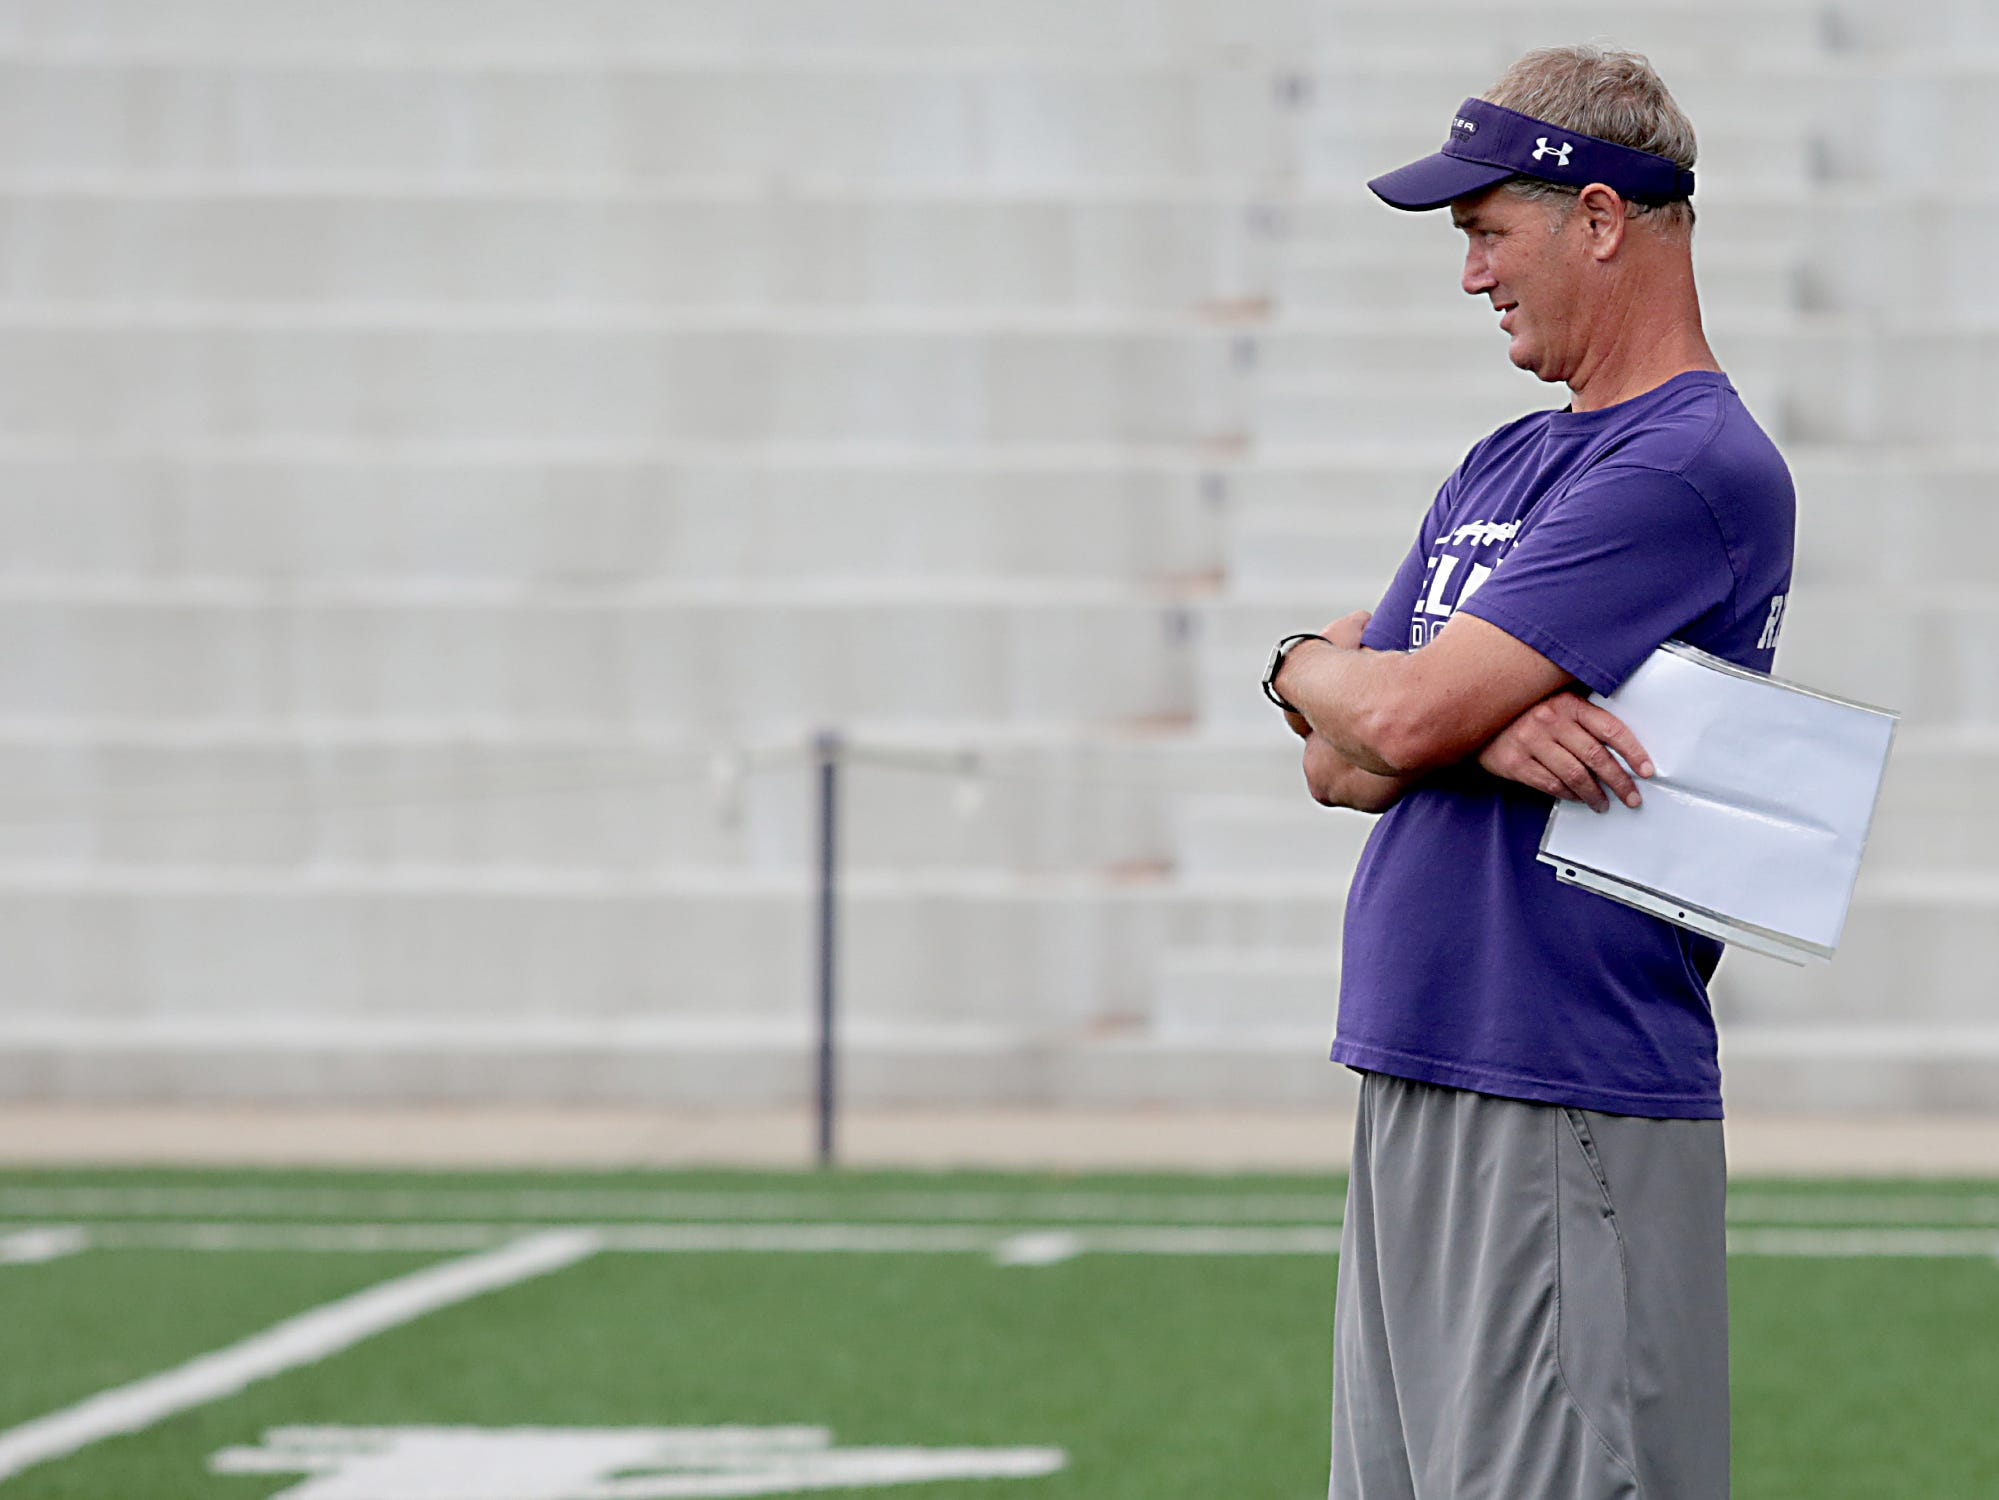 Elder High School head football coach Doug Ramsey watches practice at The Pit Tuesday, July 31, 2018.